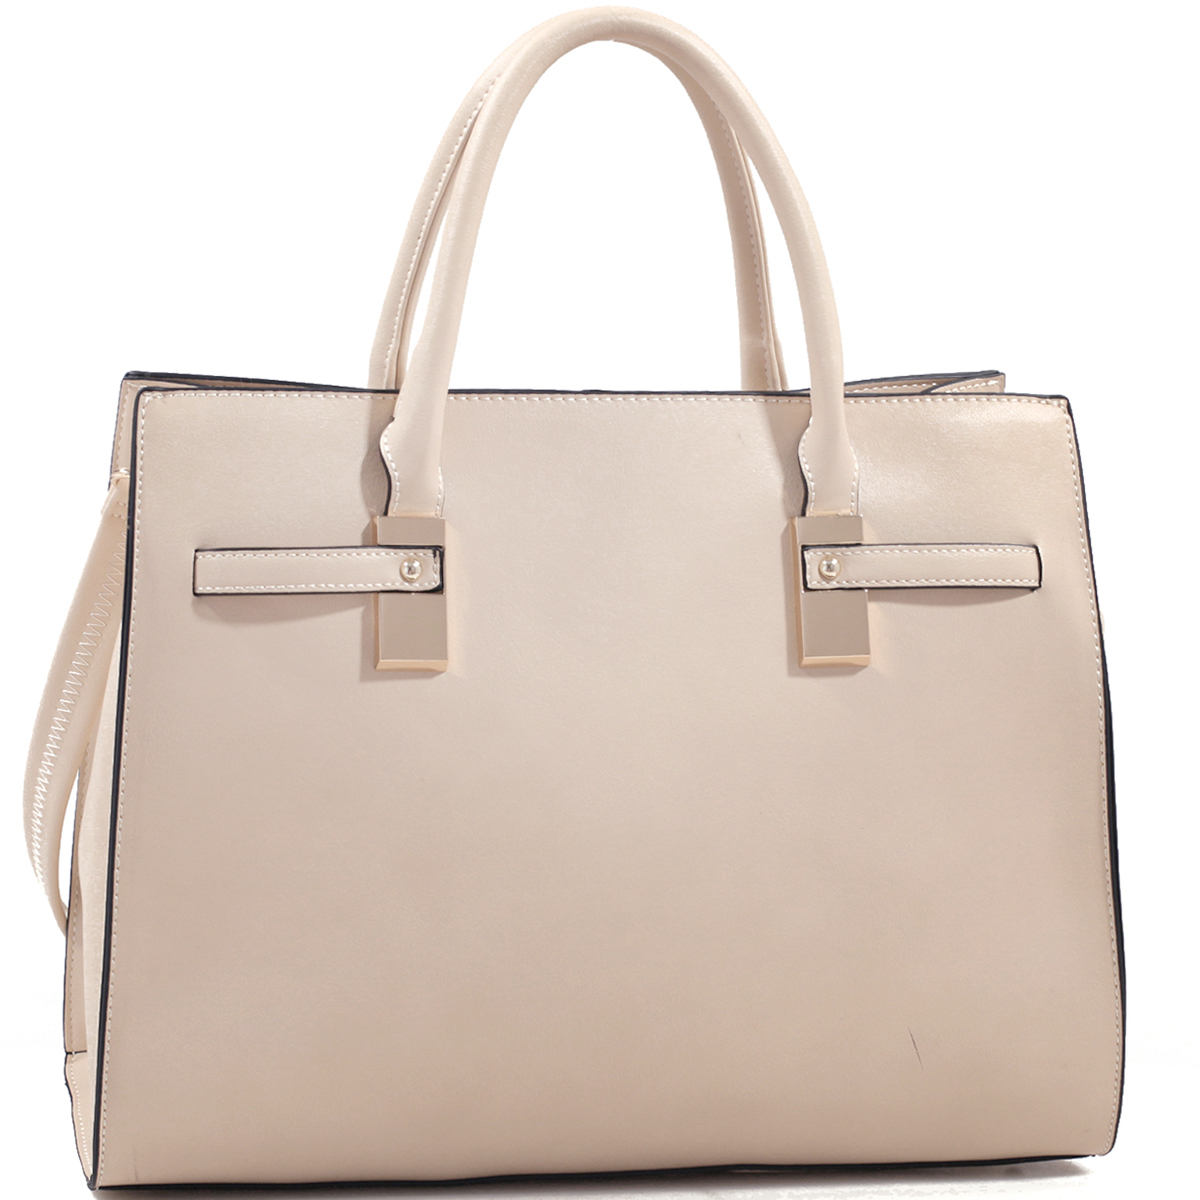 Structured Faux Leather Gold-Tone Satchel